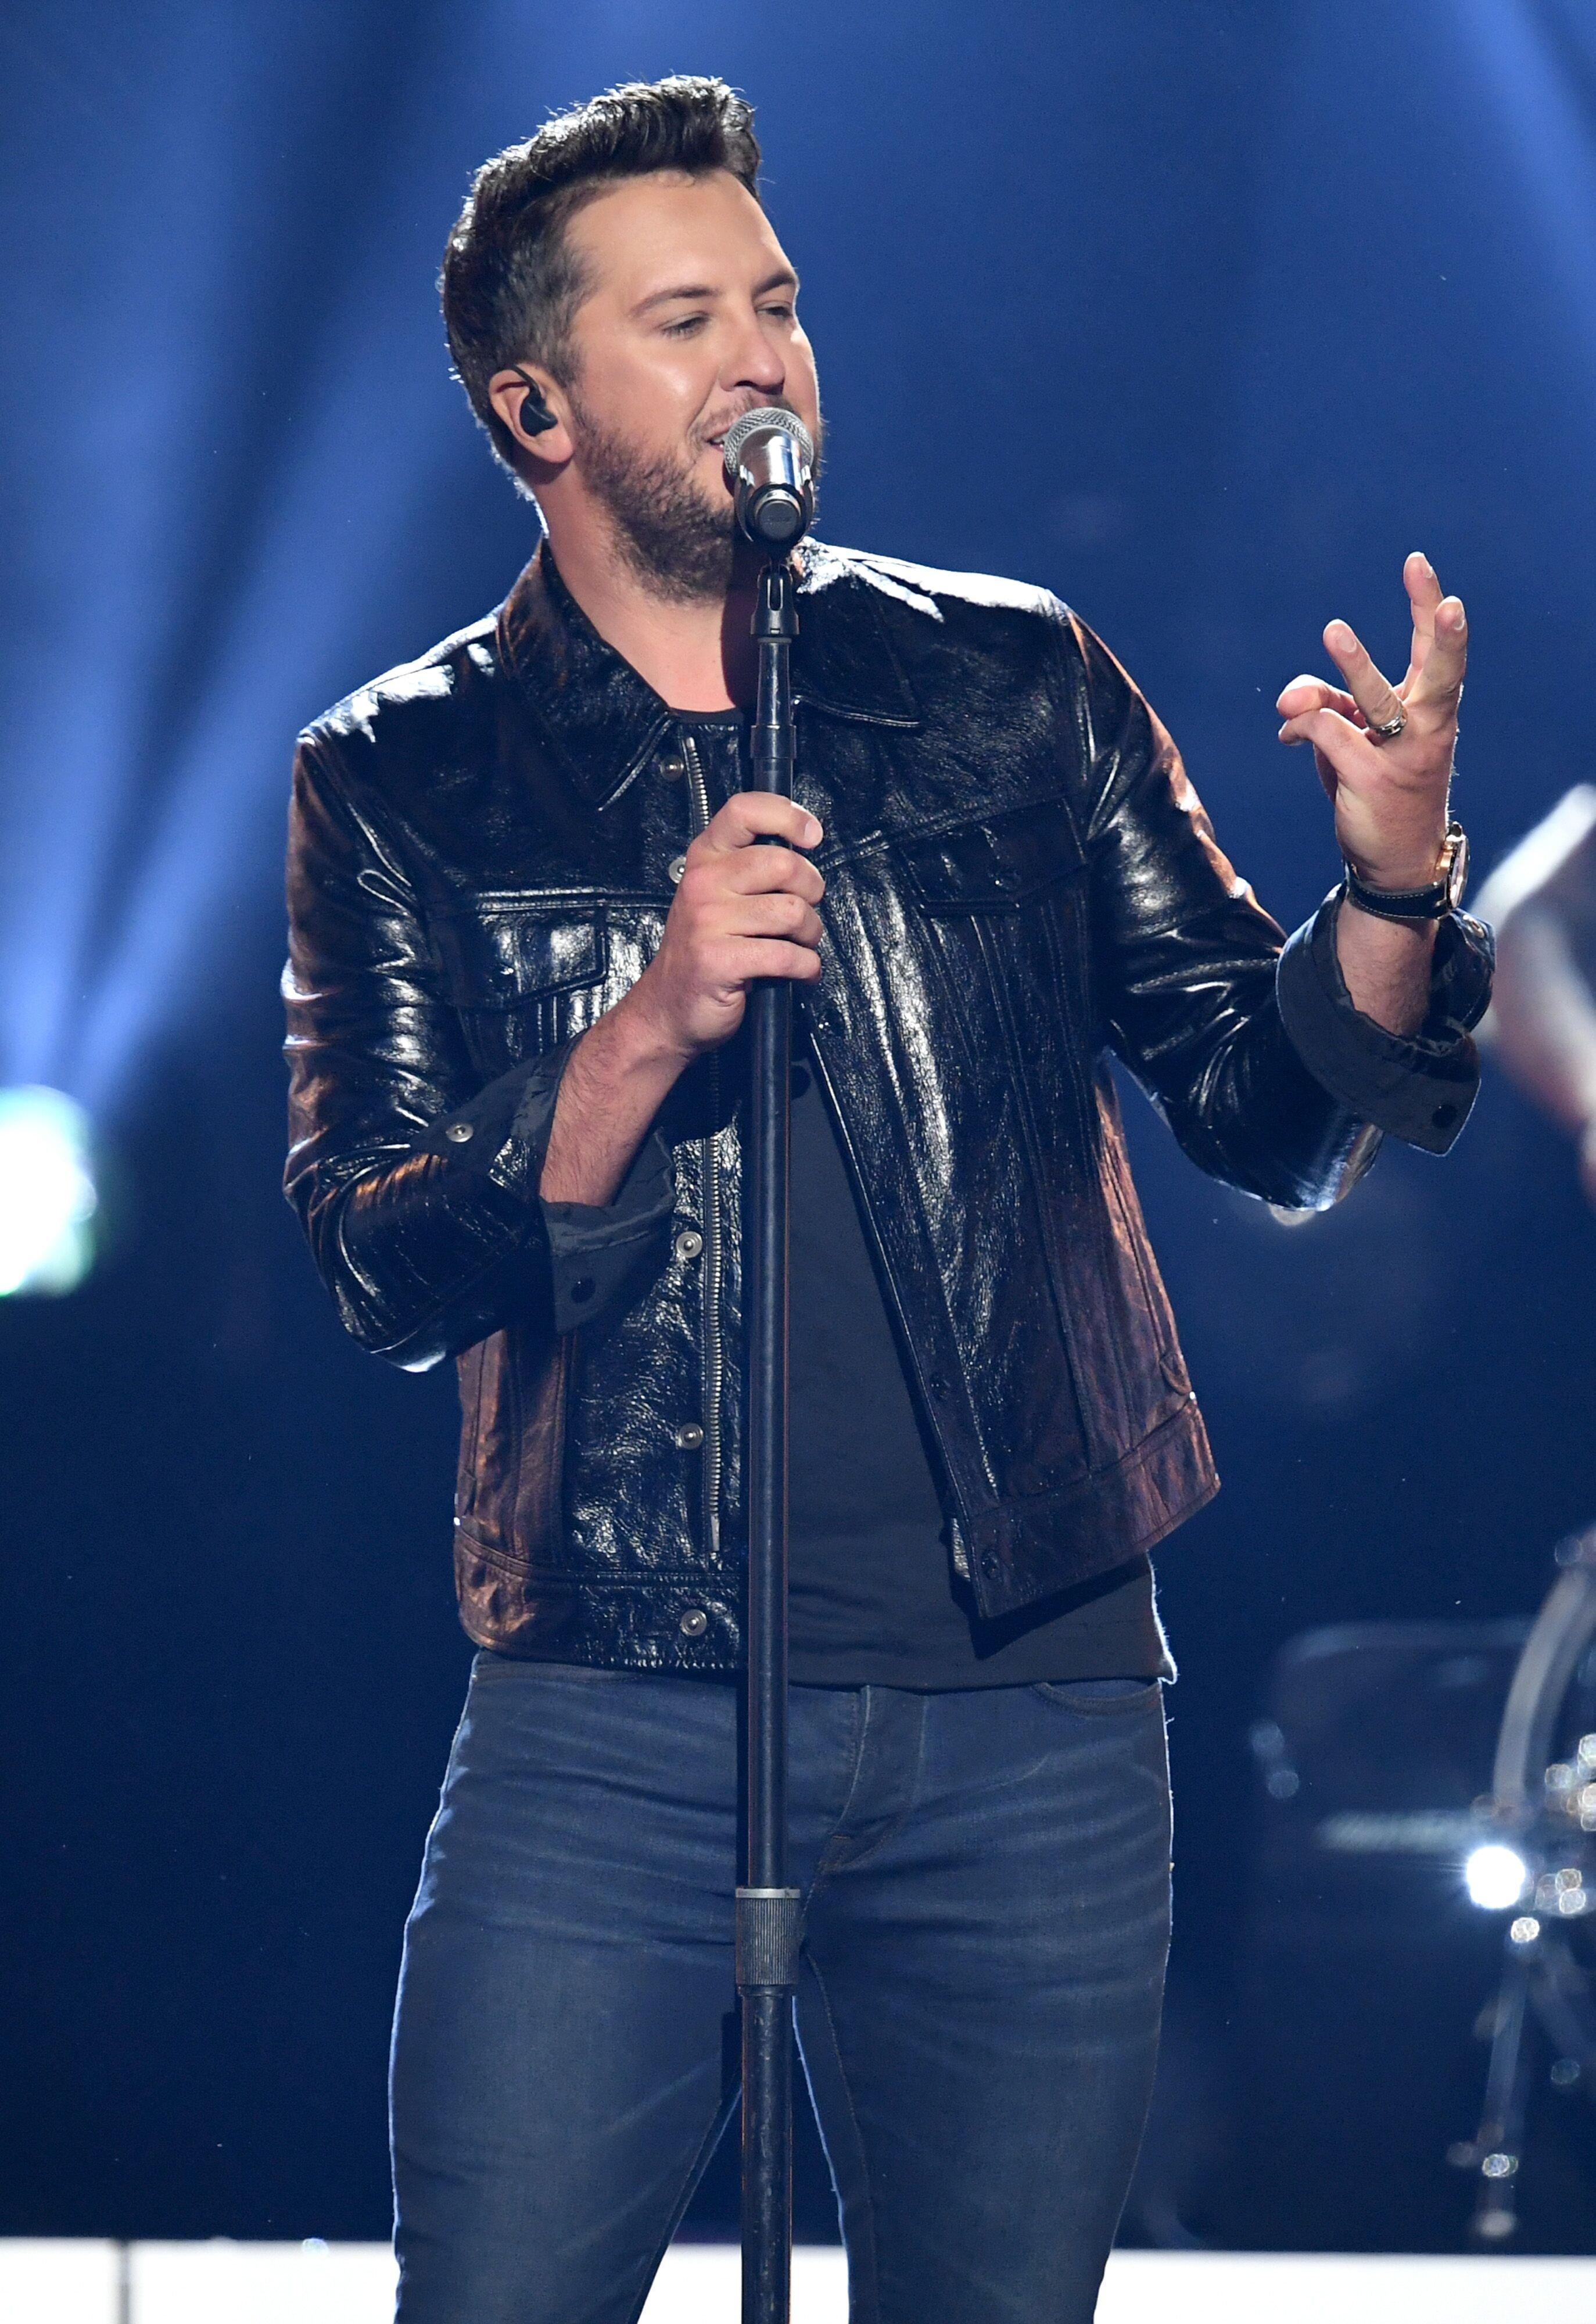 Luke Bryan performs onstage during the 54th Academy Of Country Music Awards at MGM Grand Garden Arena on April 07, 2019 in Las Vegas, Nevada | Photo: Getty Images